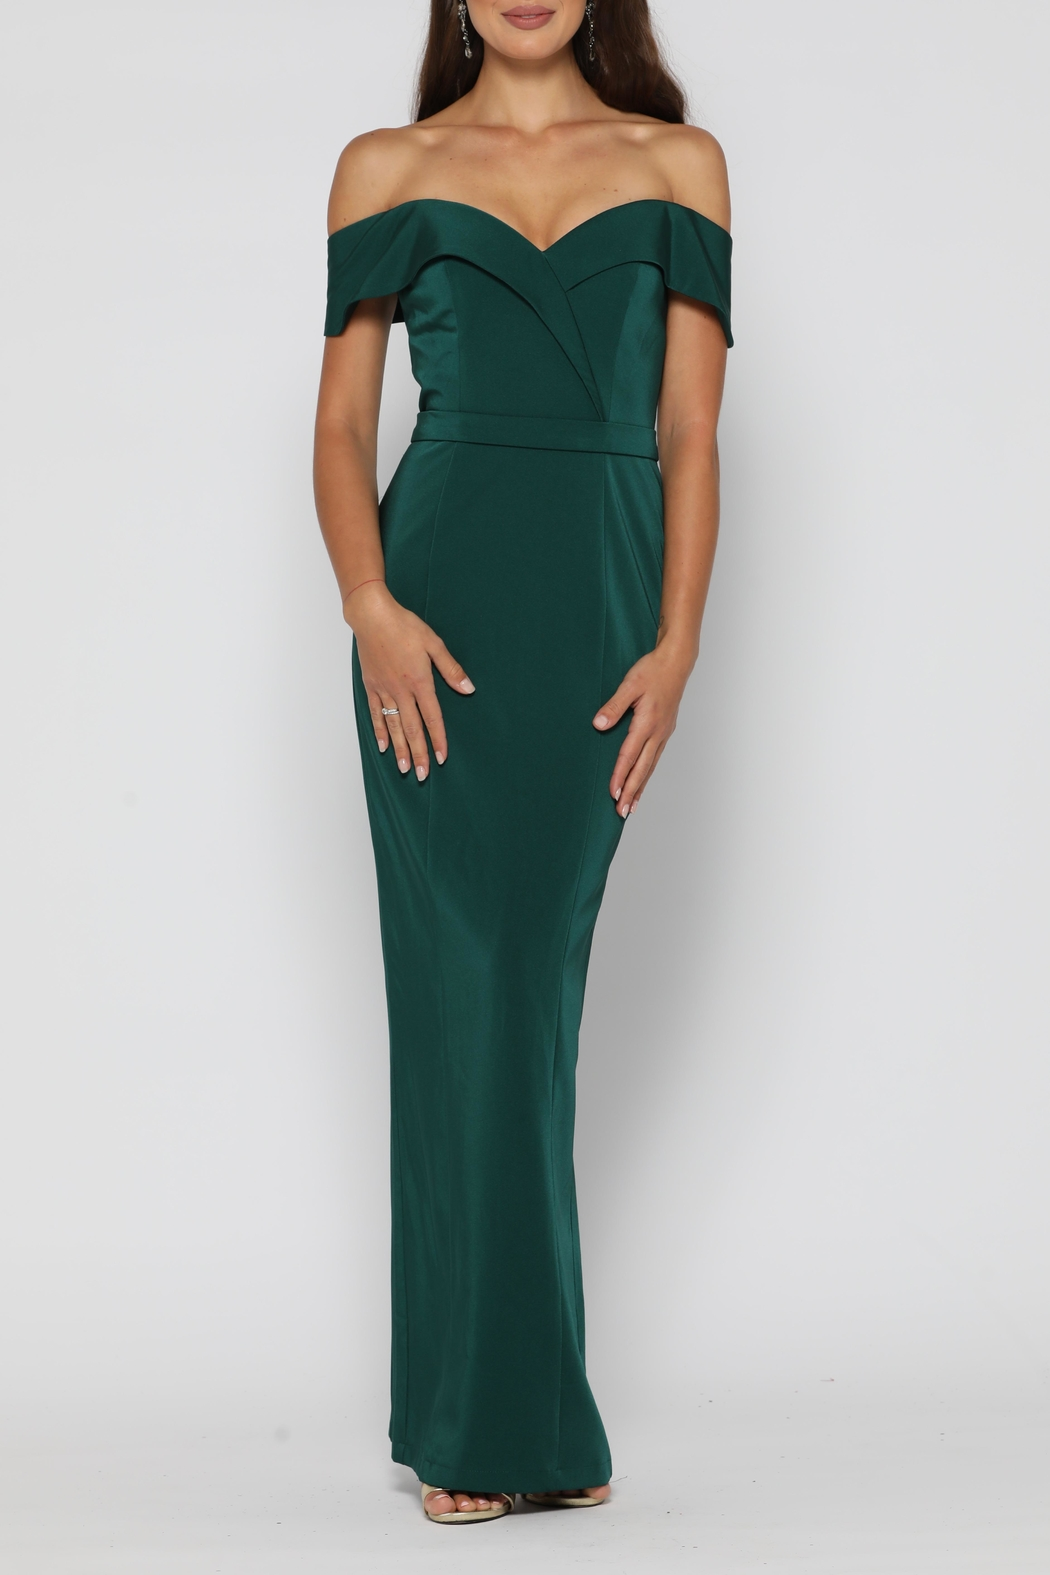 YSS the Label Paris Dress Emerald - Main Image